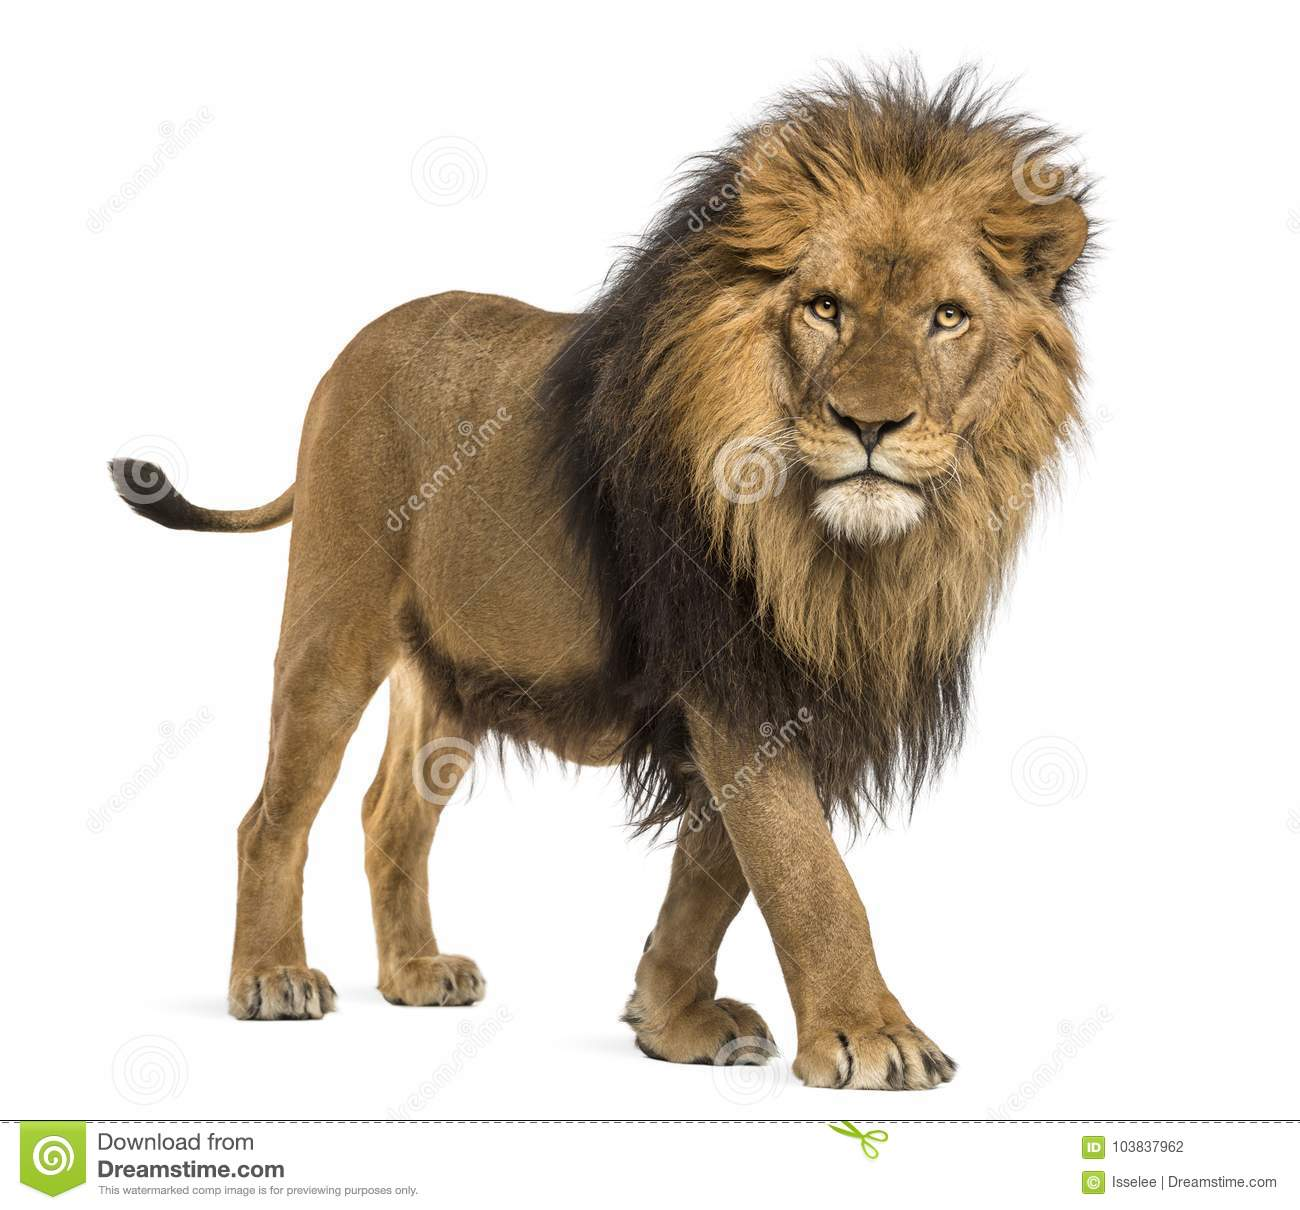 20,20 Lion Walking Photos   Free & Royalty Free Stock Photos from ...